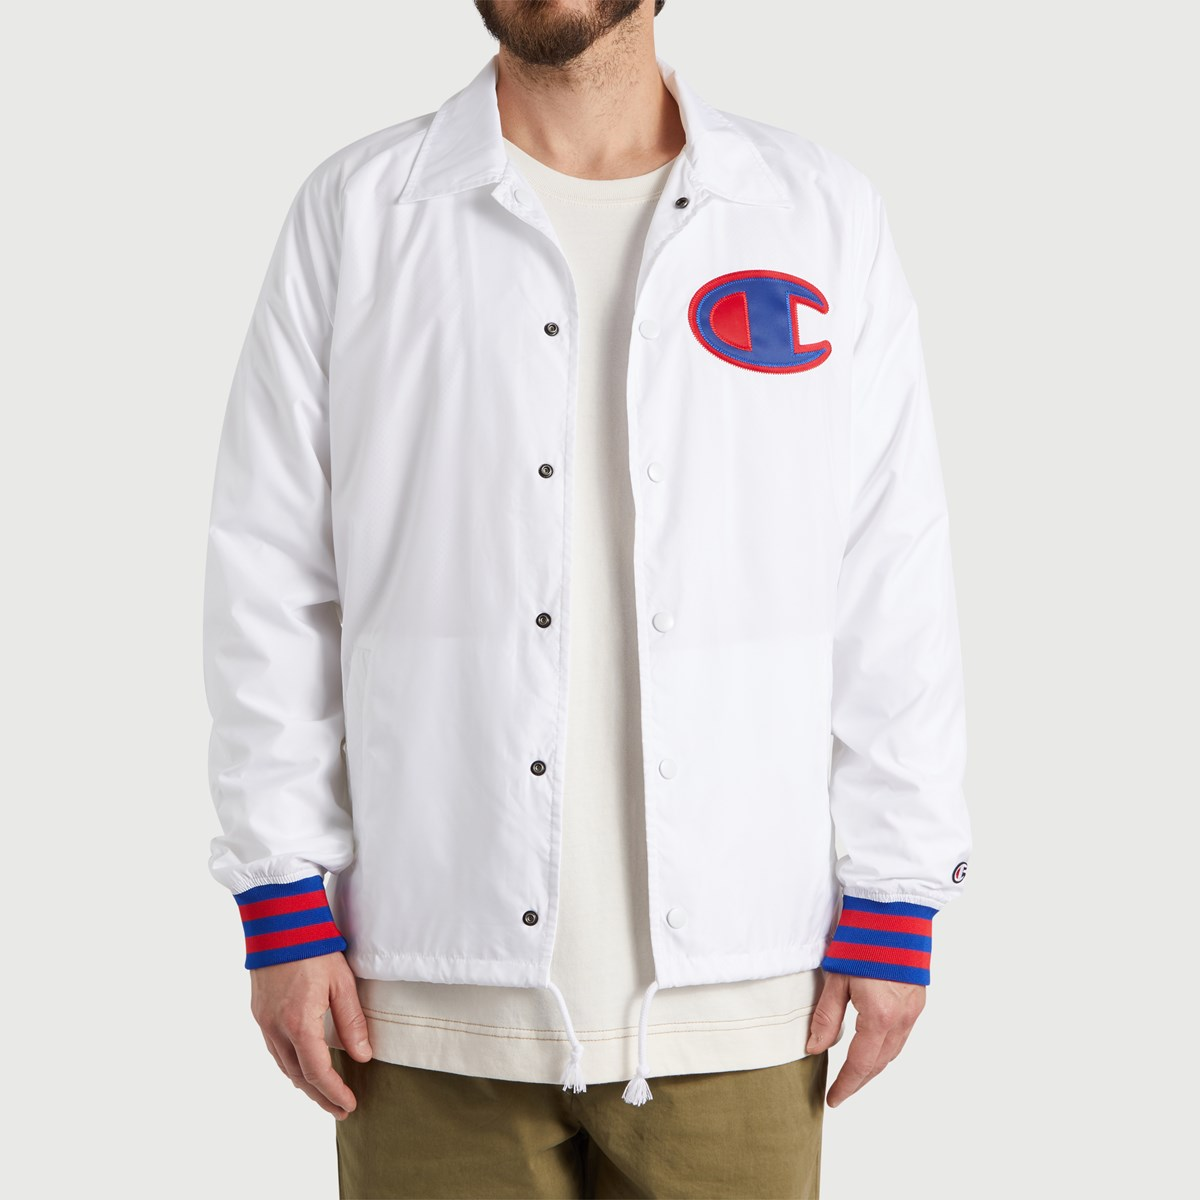 Men's Satin Coach Jacket in White